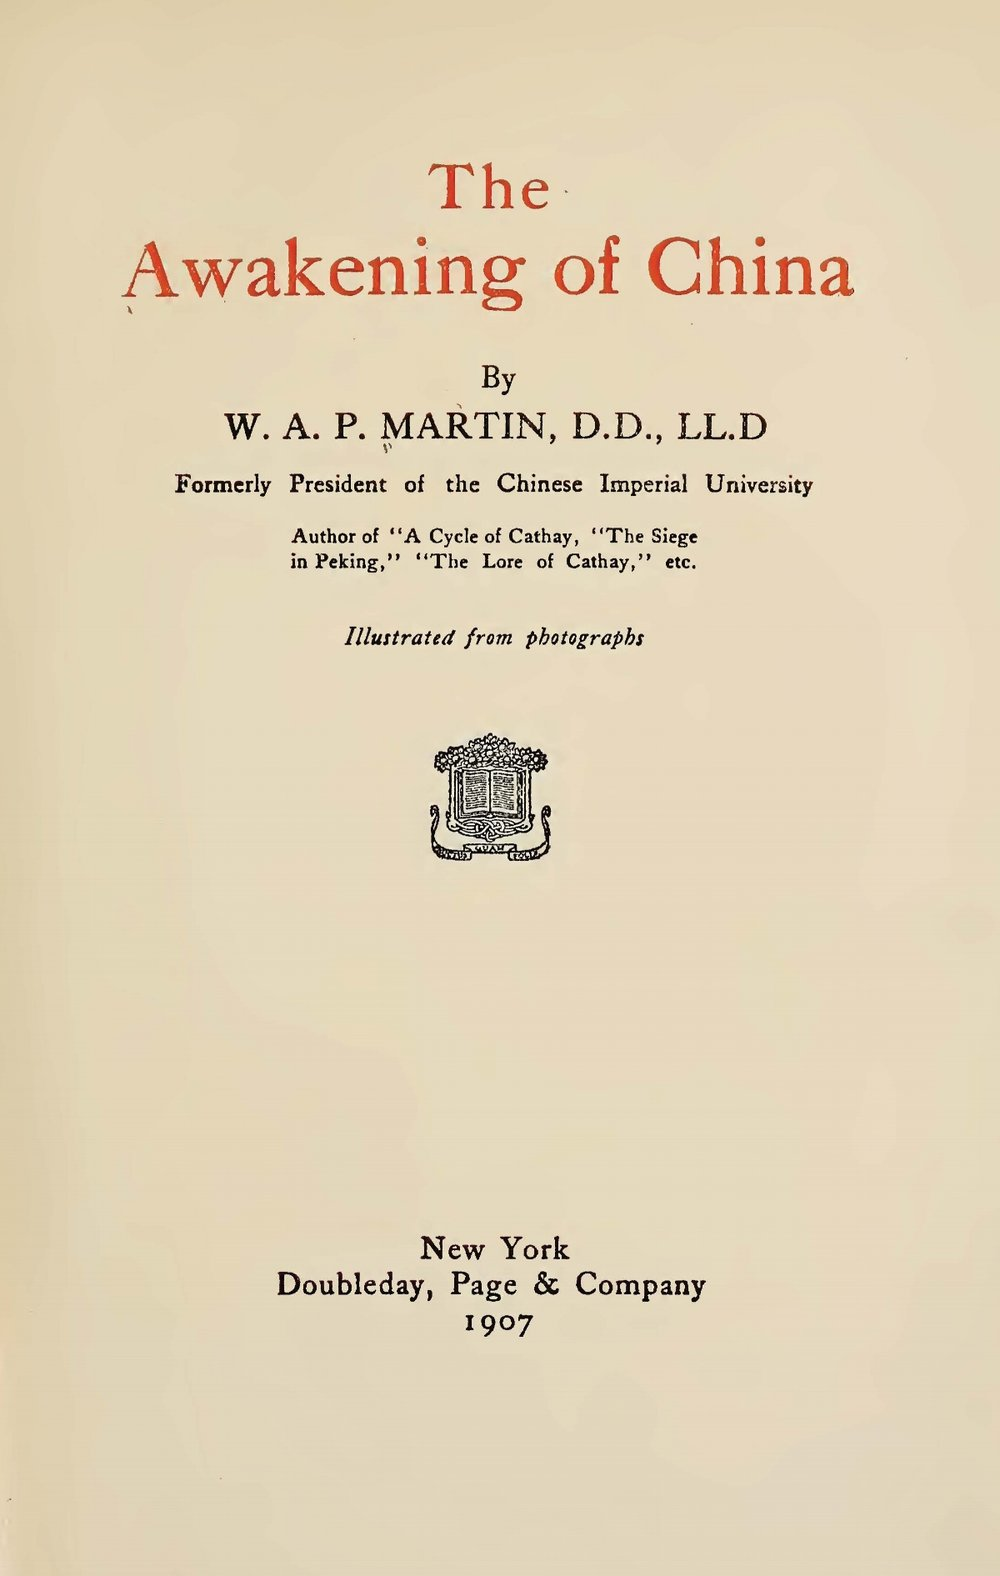 Martin, William Alexander Parsons, The Awakening of China Title Page.jpg